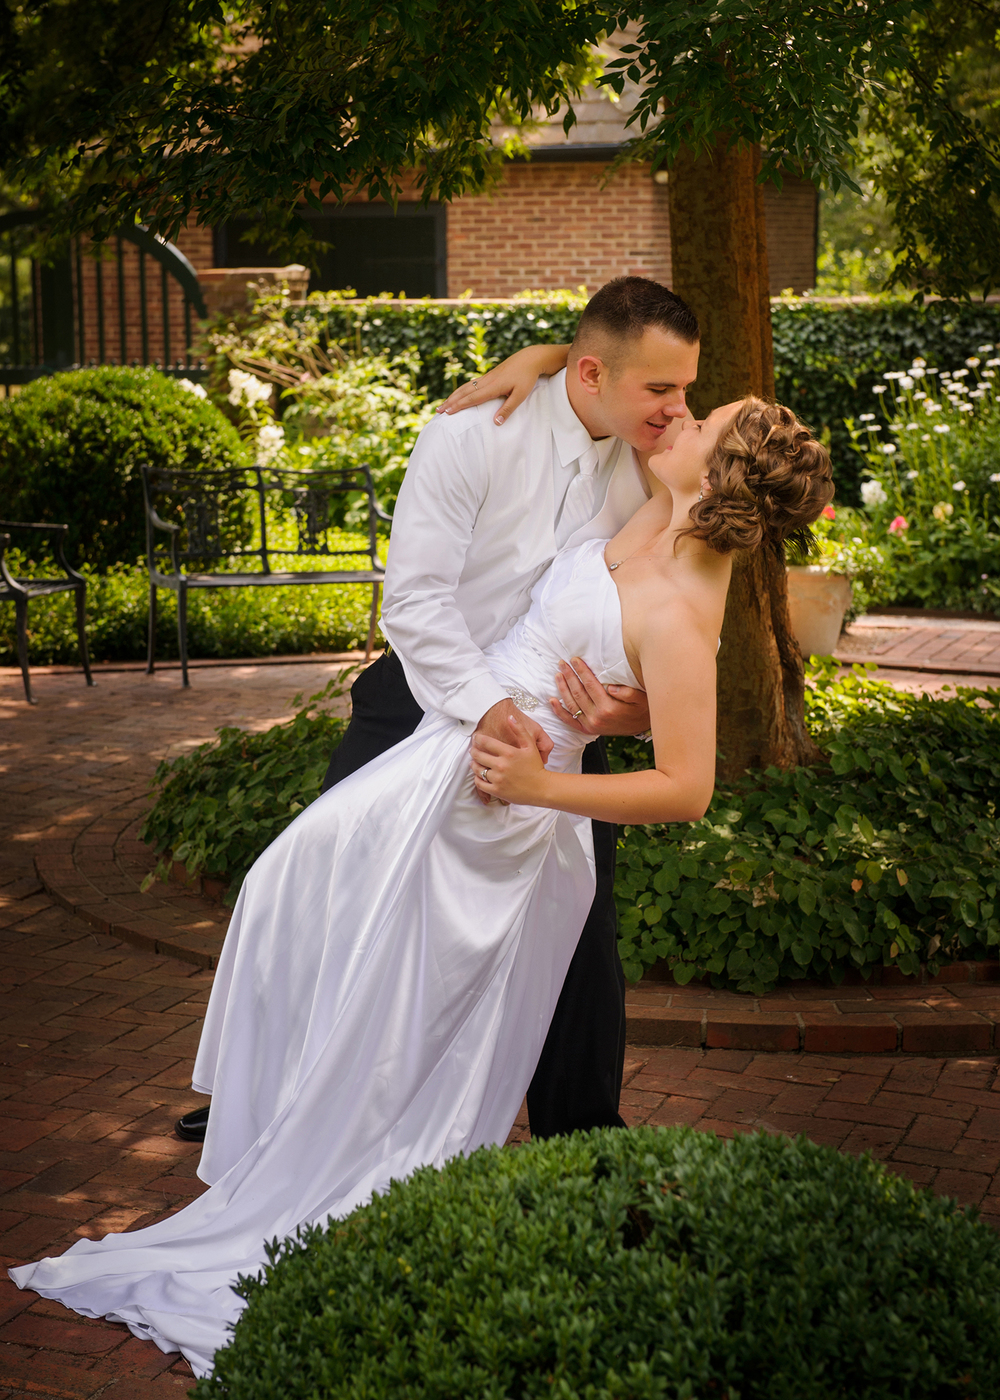 wedding_photographer_lexington_ky_studio_walz160.jpg